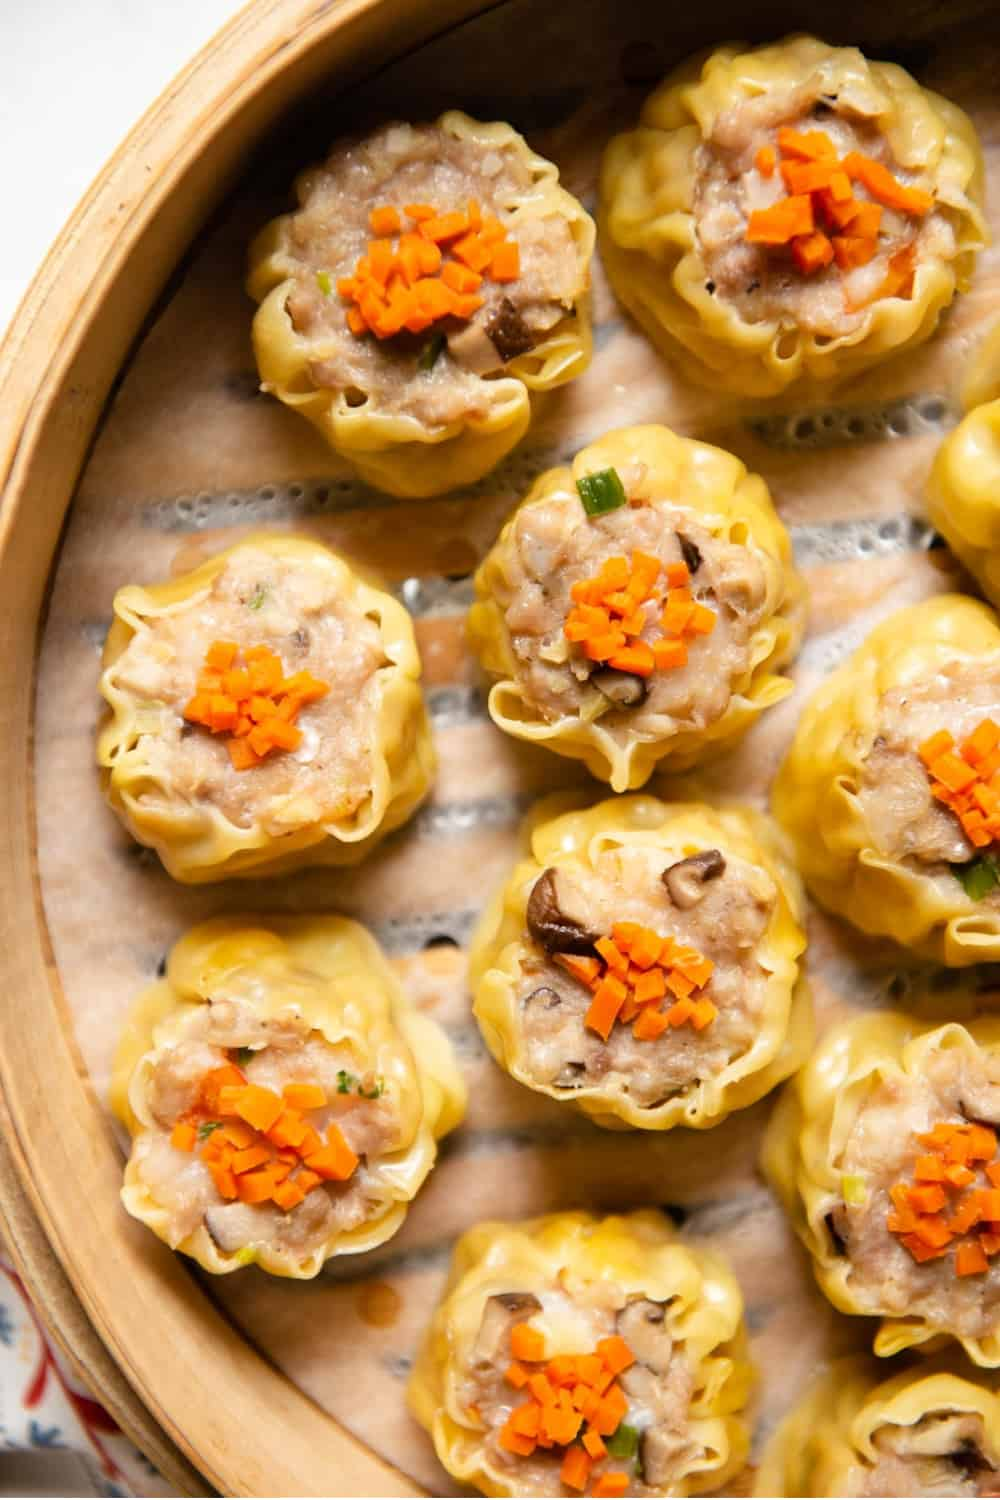 Hong Kong Street Food Siu Mai